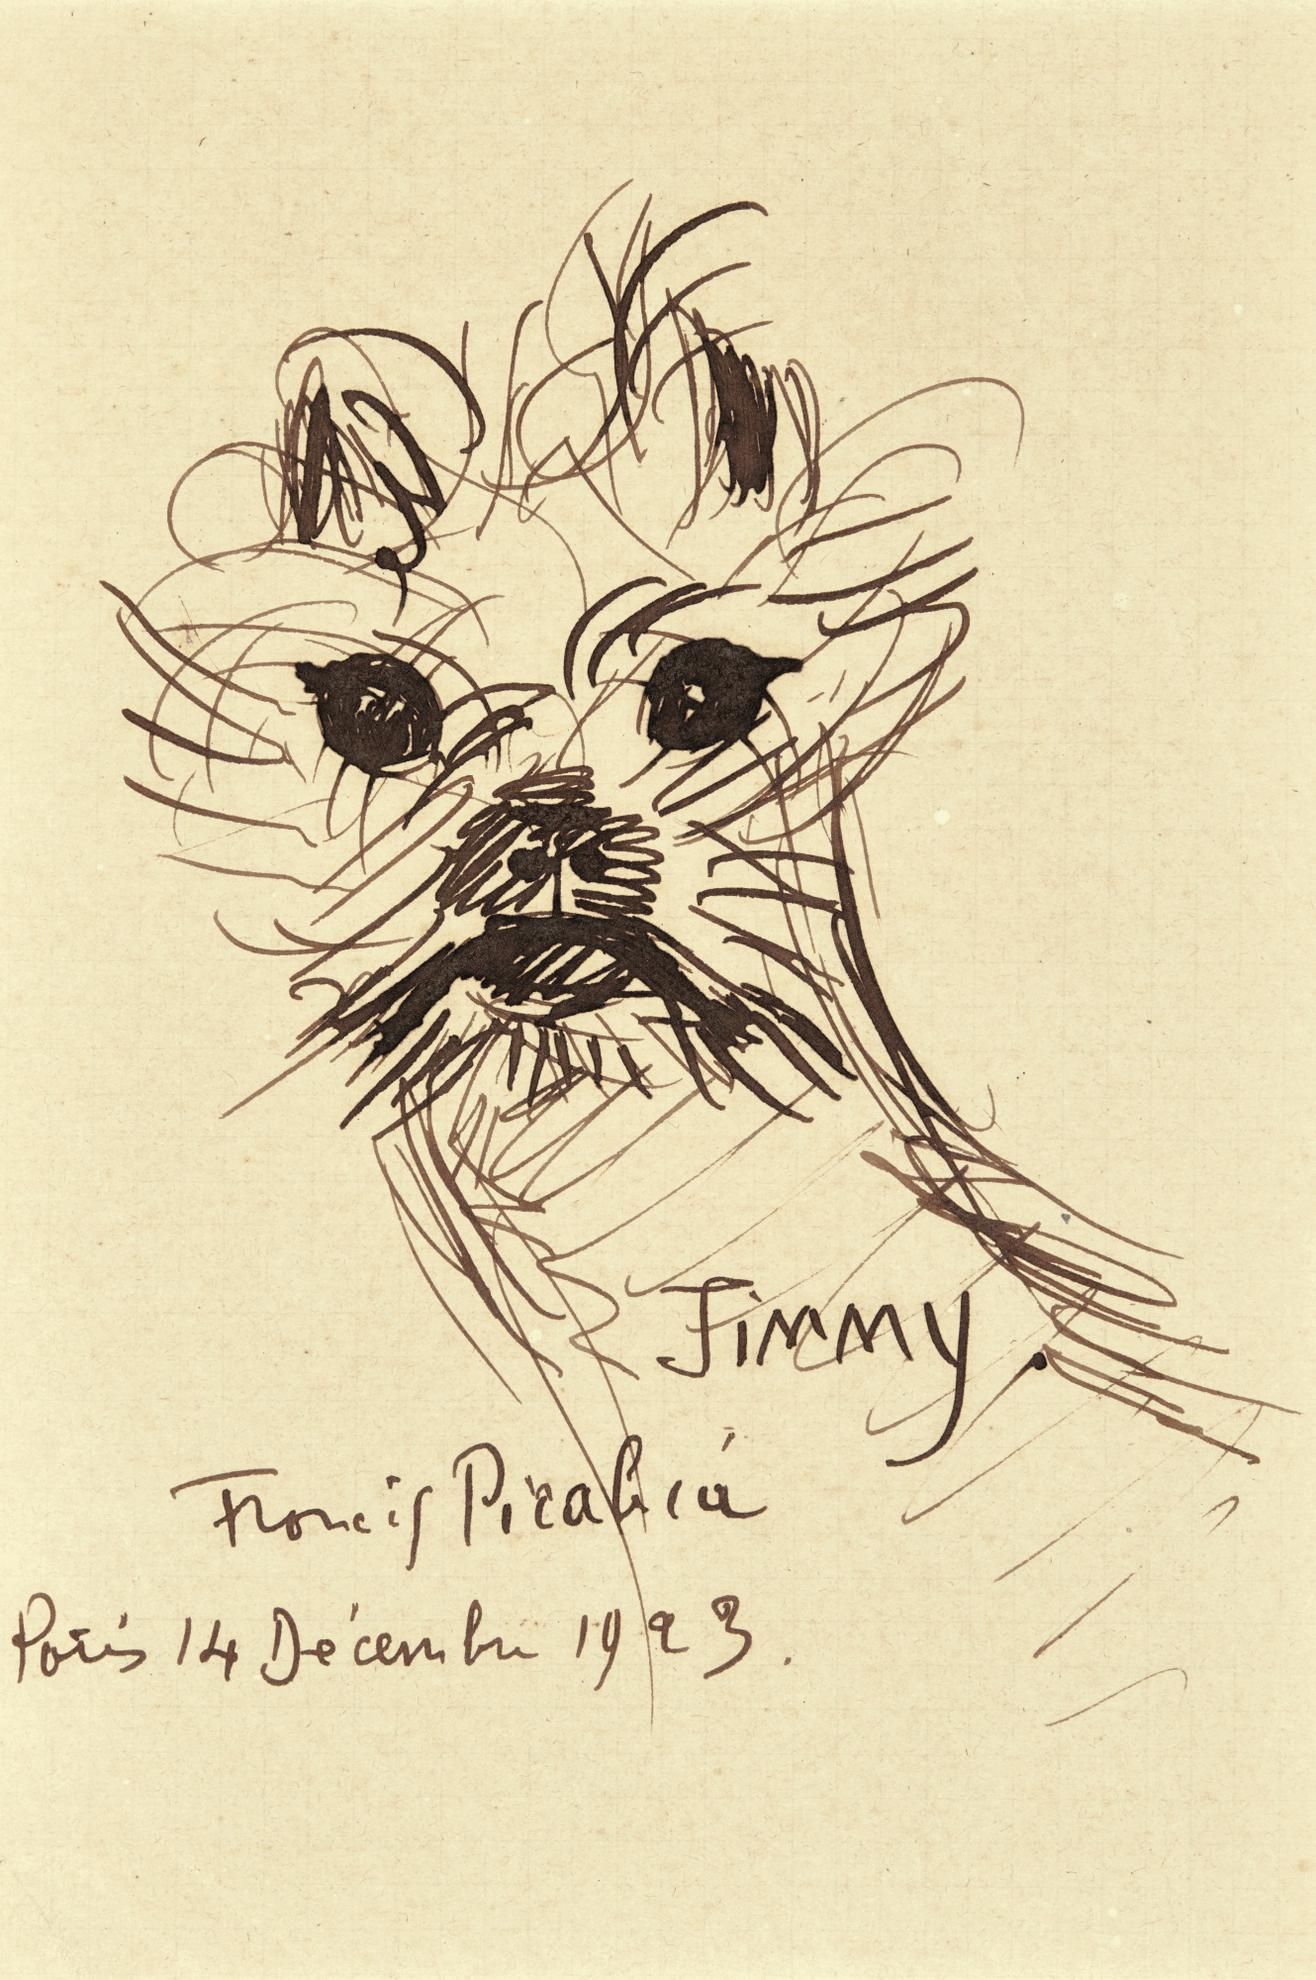 Francis Picabia-Jimmy-1923